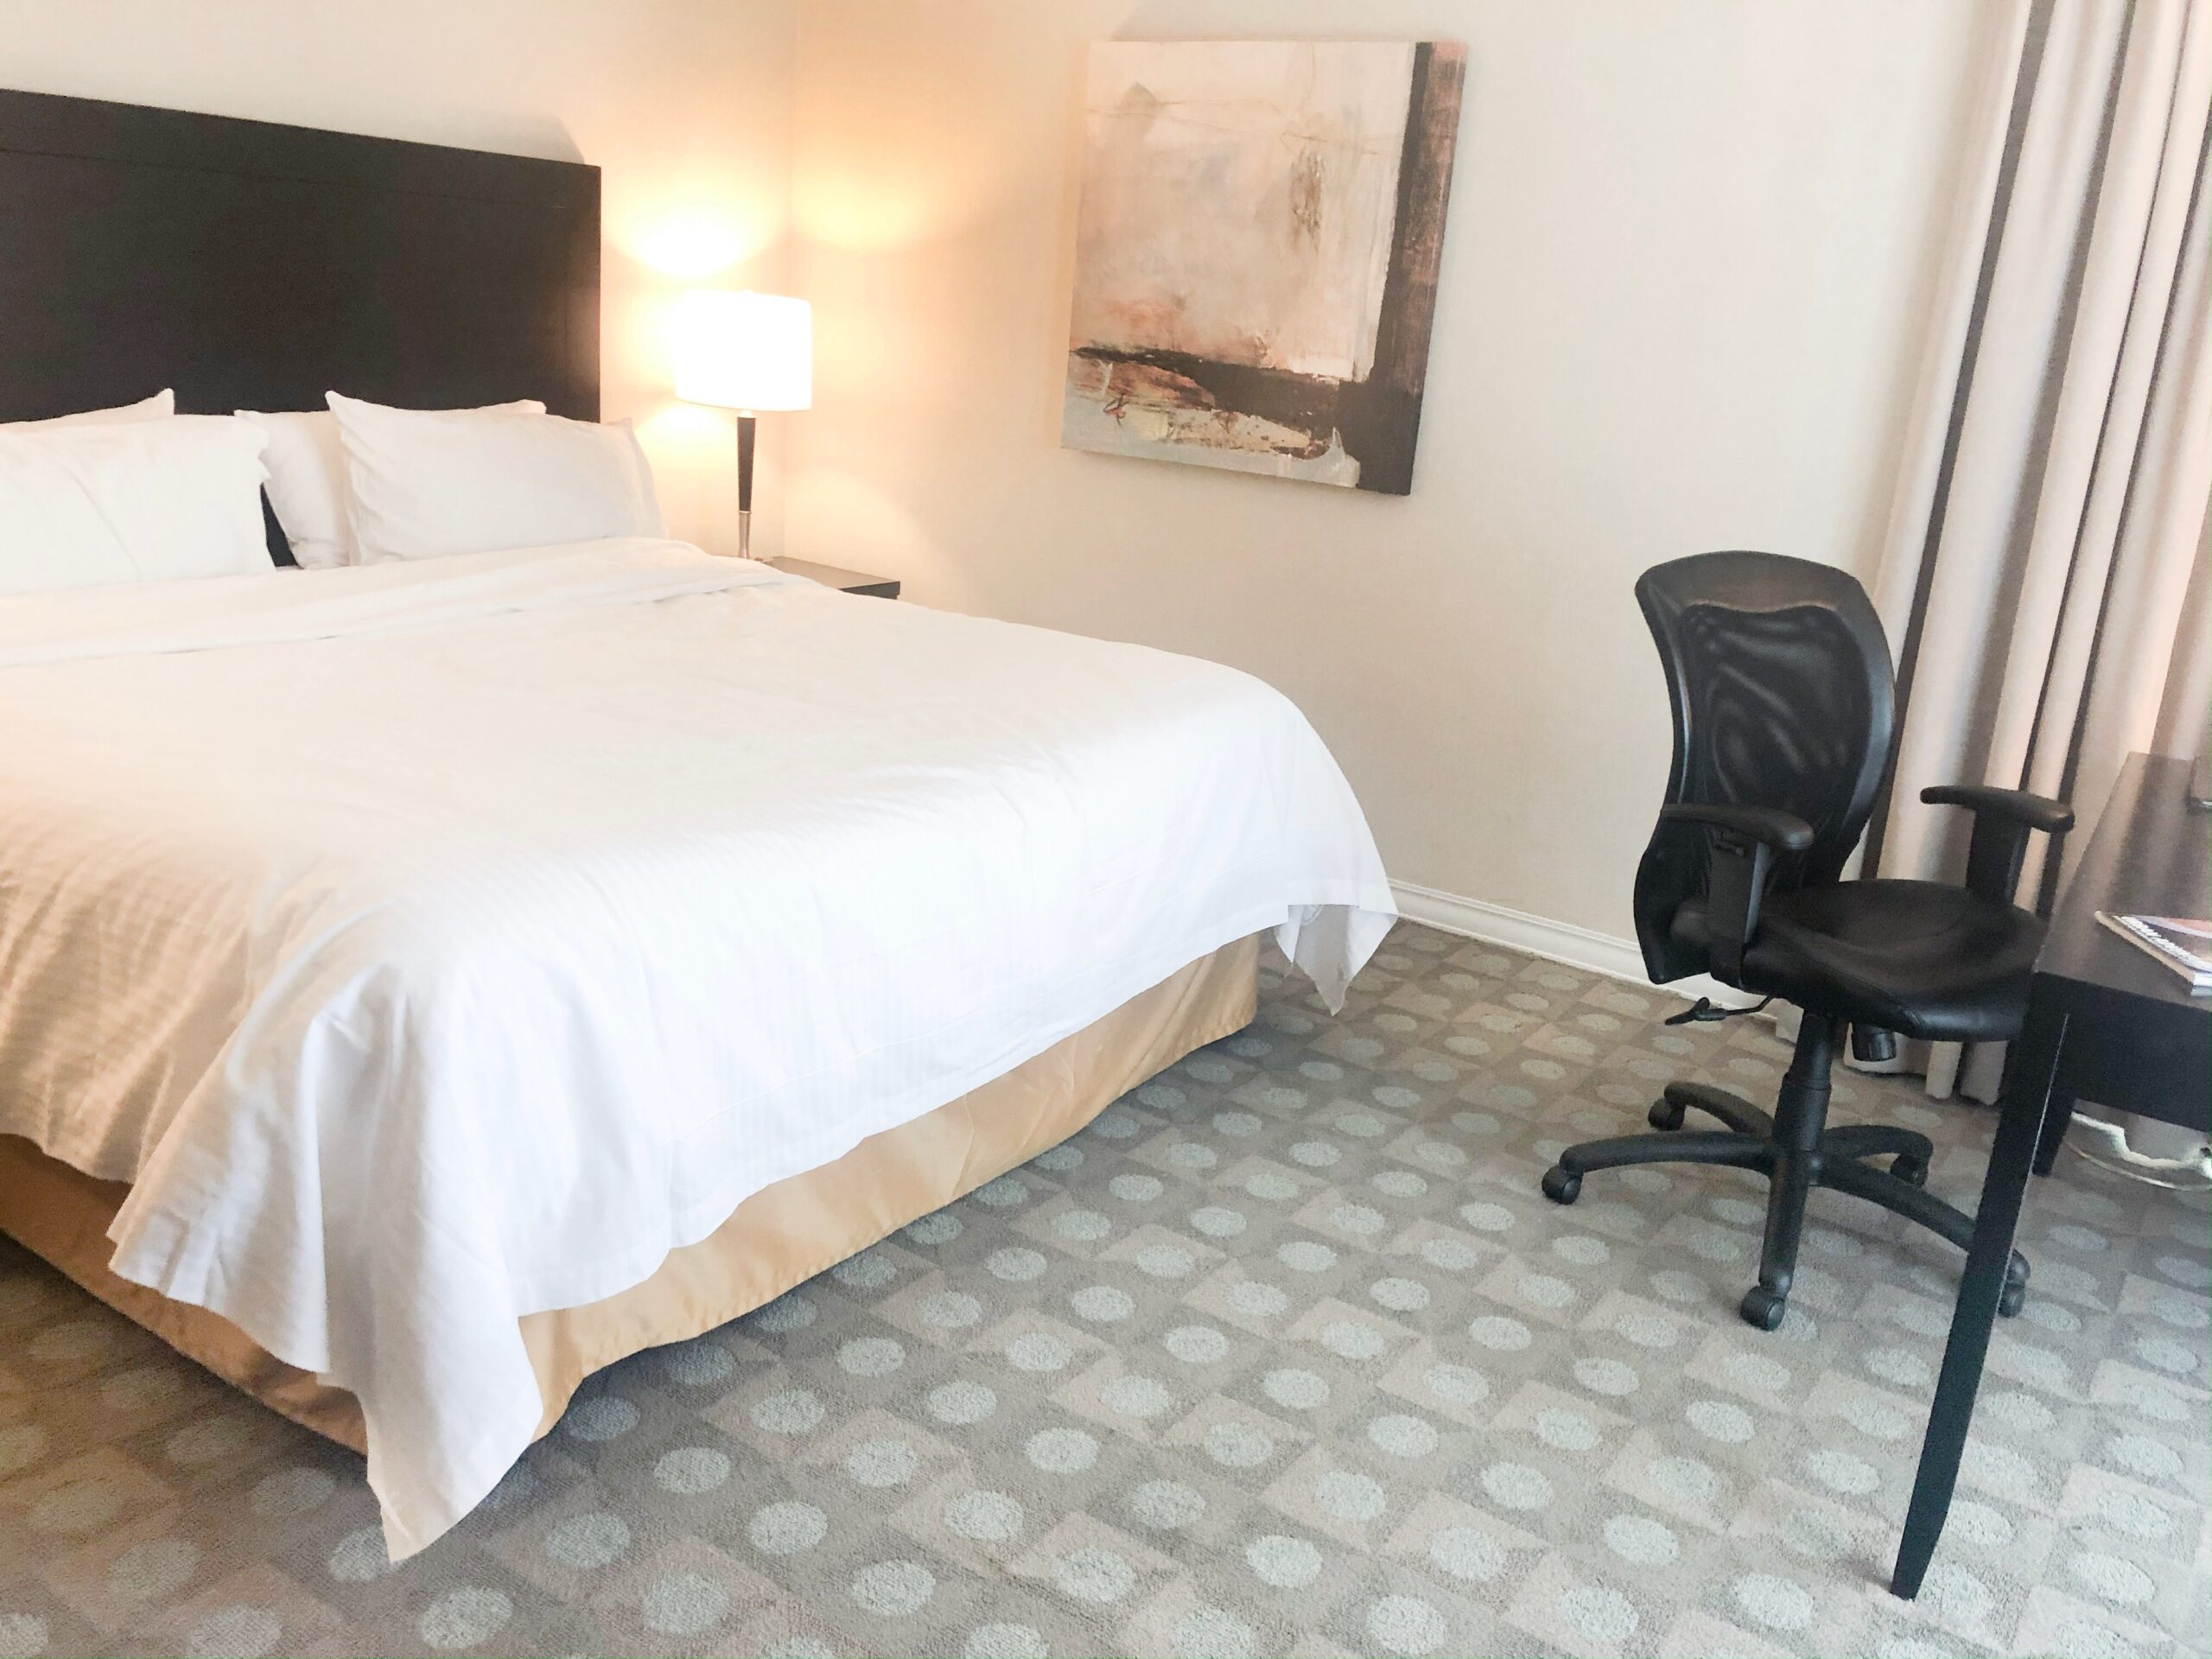 Staycation at The Chelsea Hotel, Toronto on Livin' Life with Style